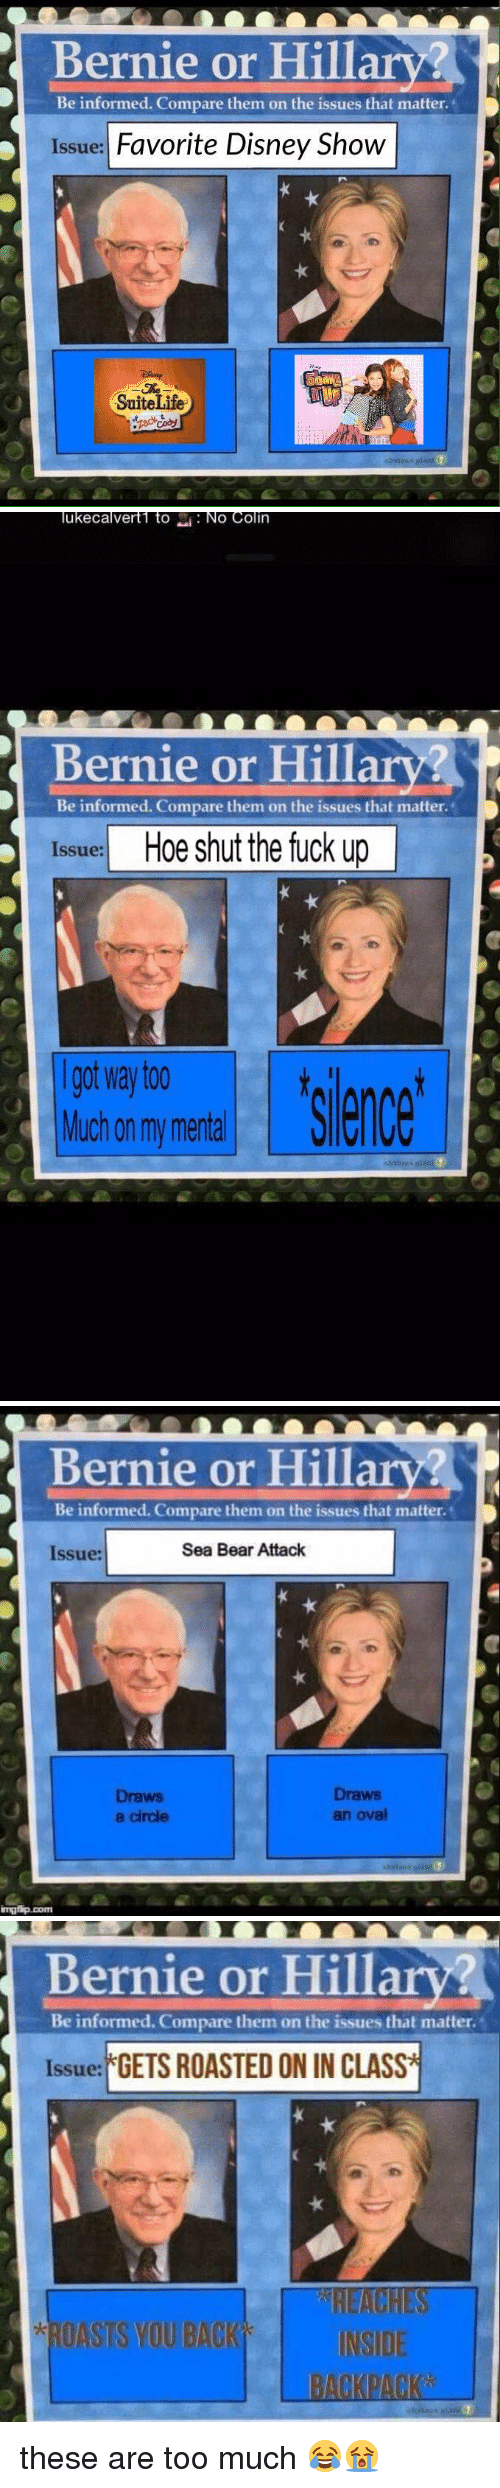 Disney, Fucking, and Funny: Bernie or Hill  Be informed. Compare them on the issues that matter  Issue: Favorite Disney Show  Suite Life   ukecalvert1 to  NO Colin  Bernie or Hilla  Be informed. Compare them on the issues that matter.  Issue:  Hoe shut the fuck up  I got Way too  ence  Much on my mental   Bernie or Hillary?  Be informed. Compare them on the issues that matter.  Sea Bear Attack  Issue:  Draws  Draws  an oval  a circle  imngfip.com   Bernie or Hilla  Be informed. Compare them on the issues that matte  Issue: GETS ROASTED ON IN CLASS  ROASTS YOU BACK  INSIDE these are too much 😂😭